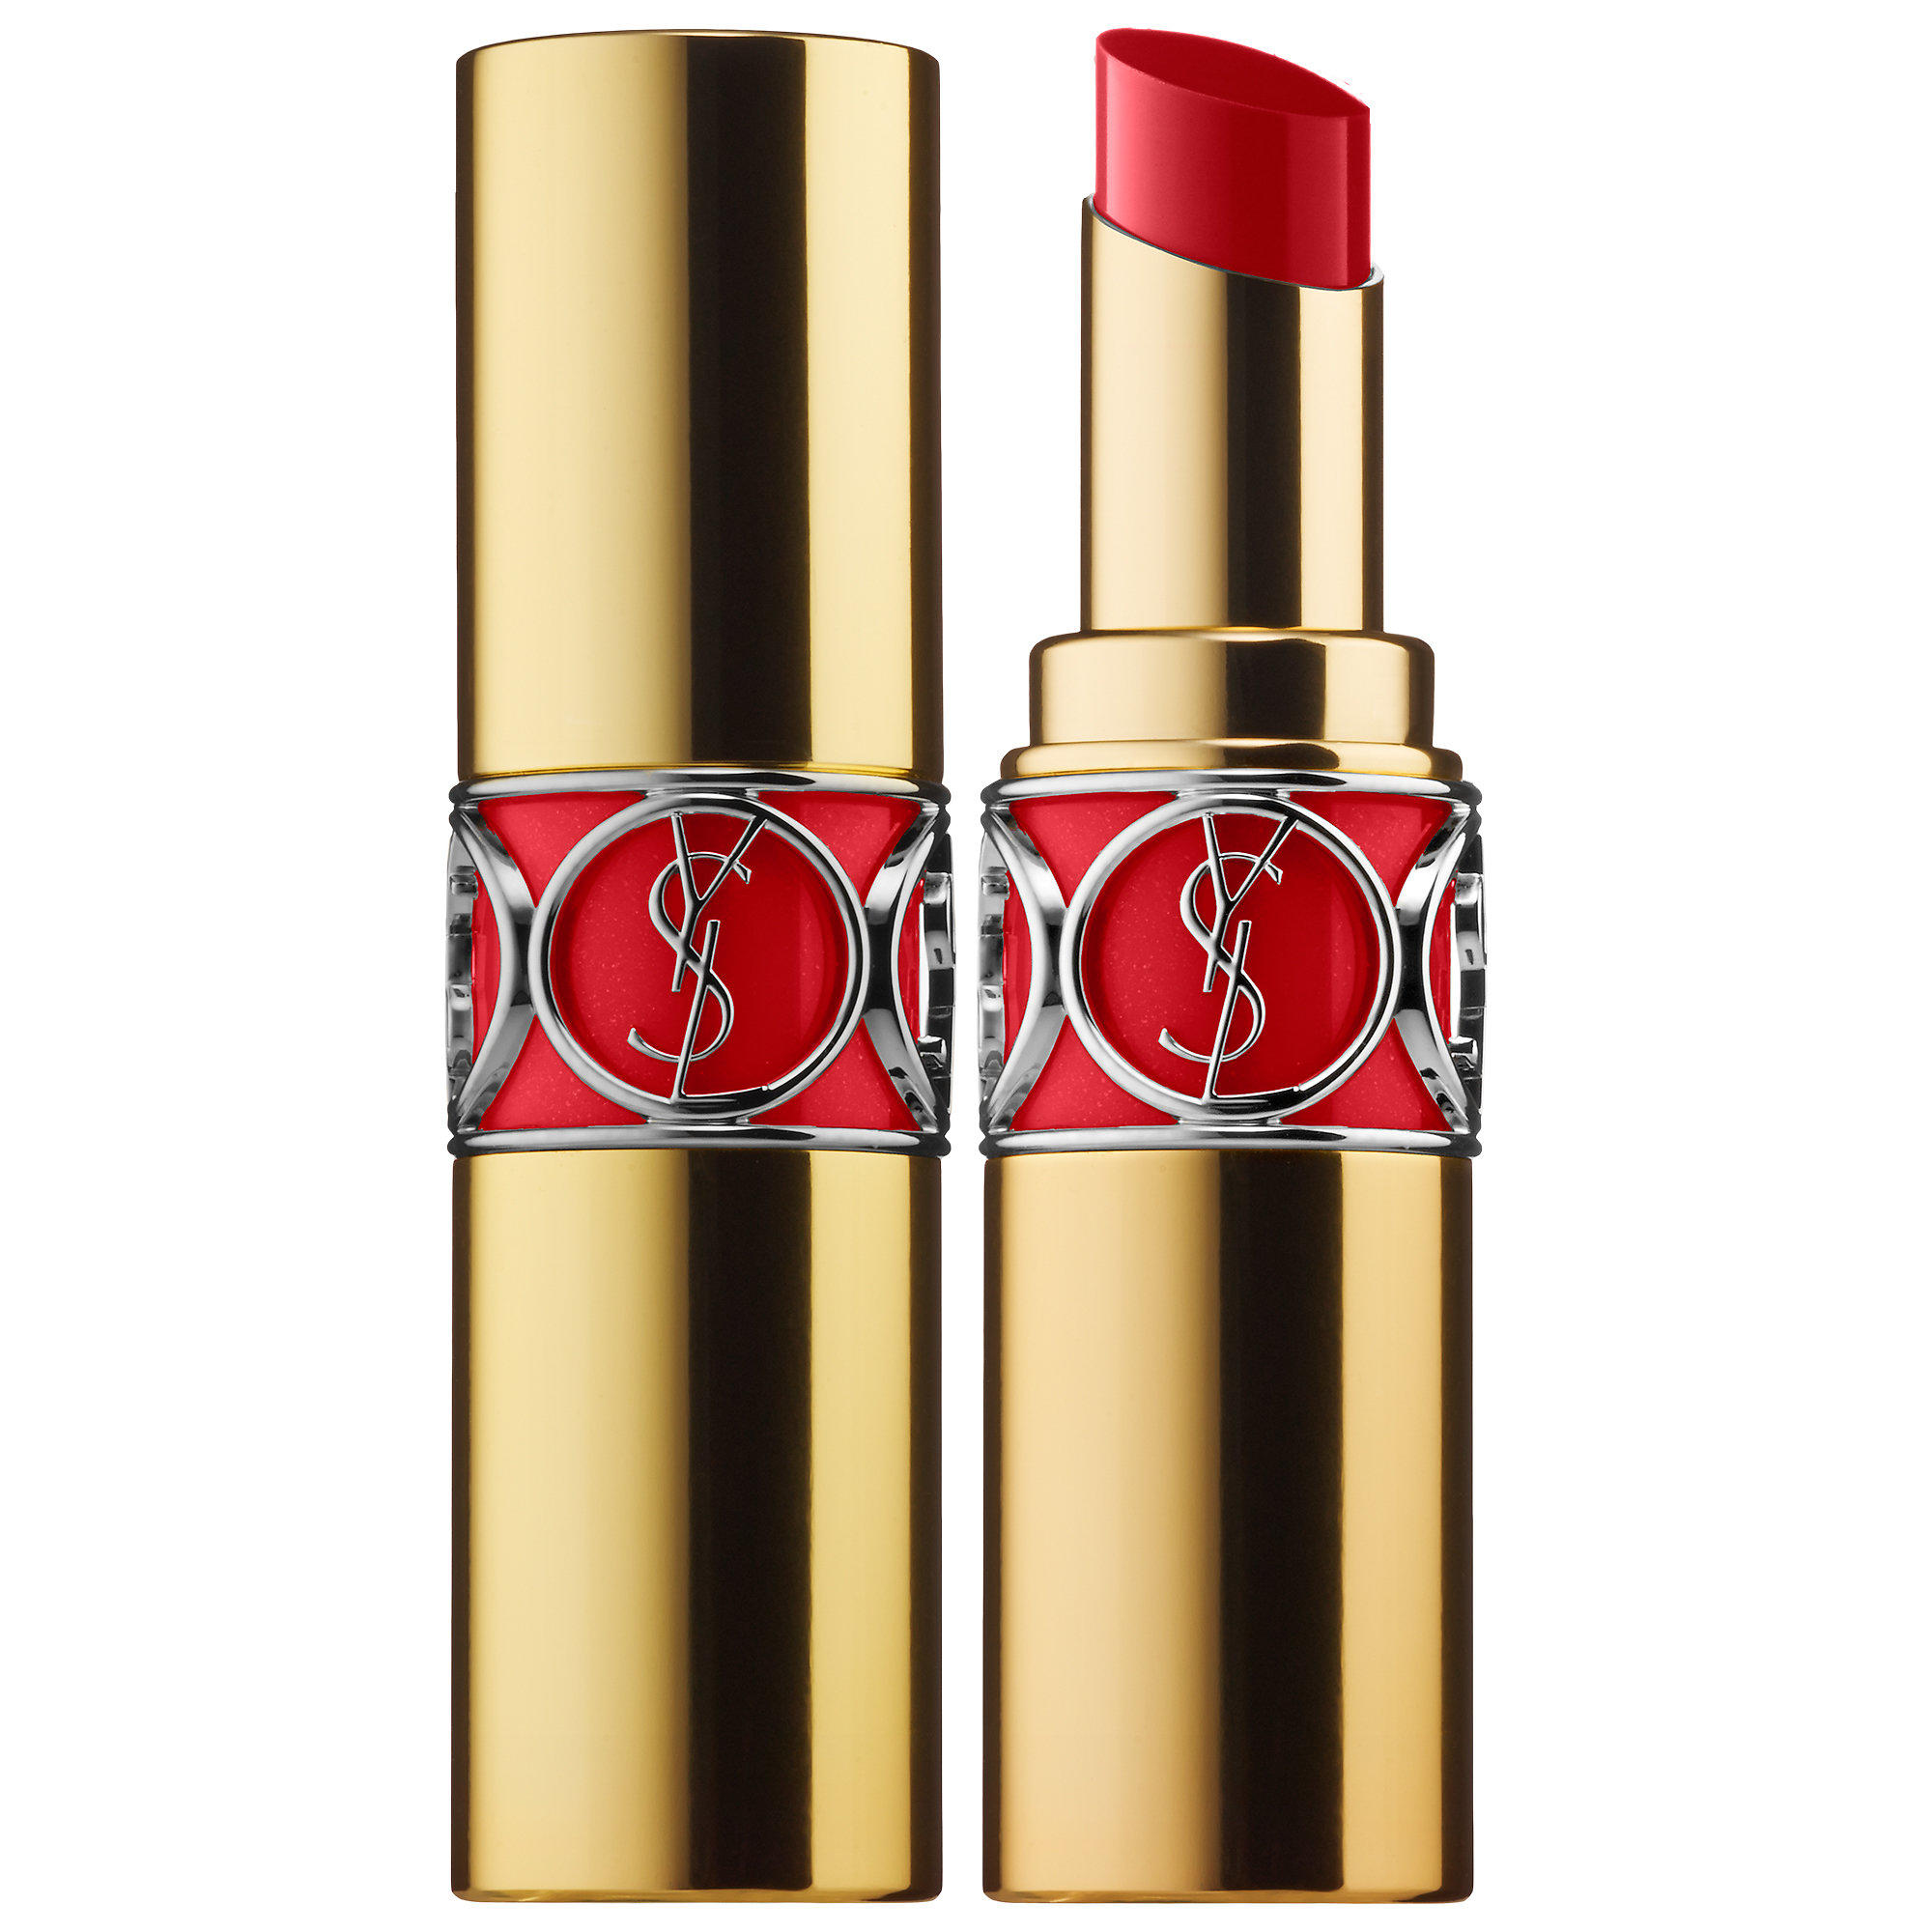 YSL Rouge Volupte Silky Sensual Radiant Lipstick Red Taboo 18